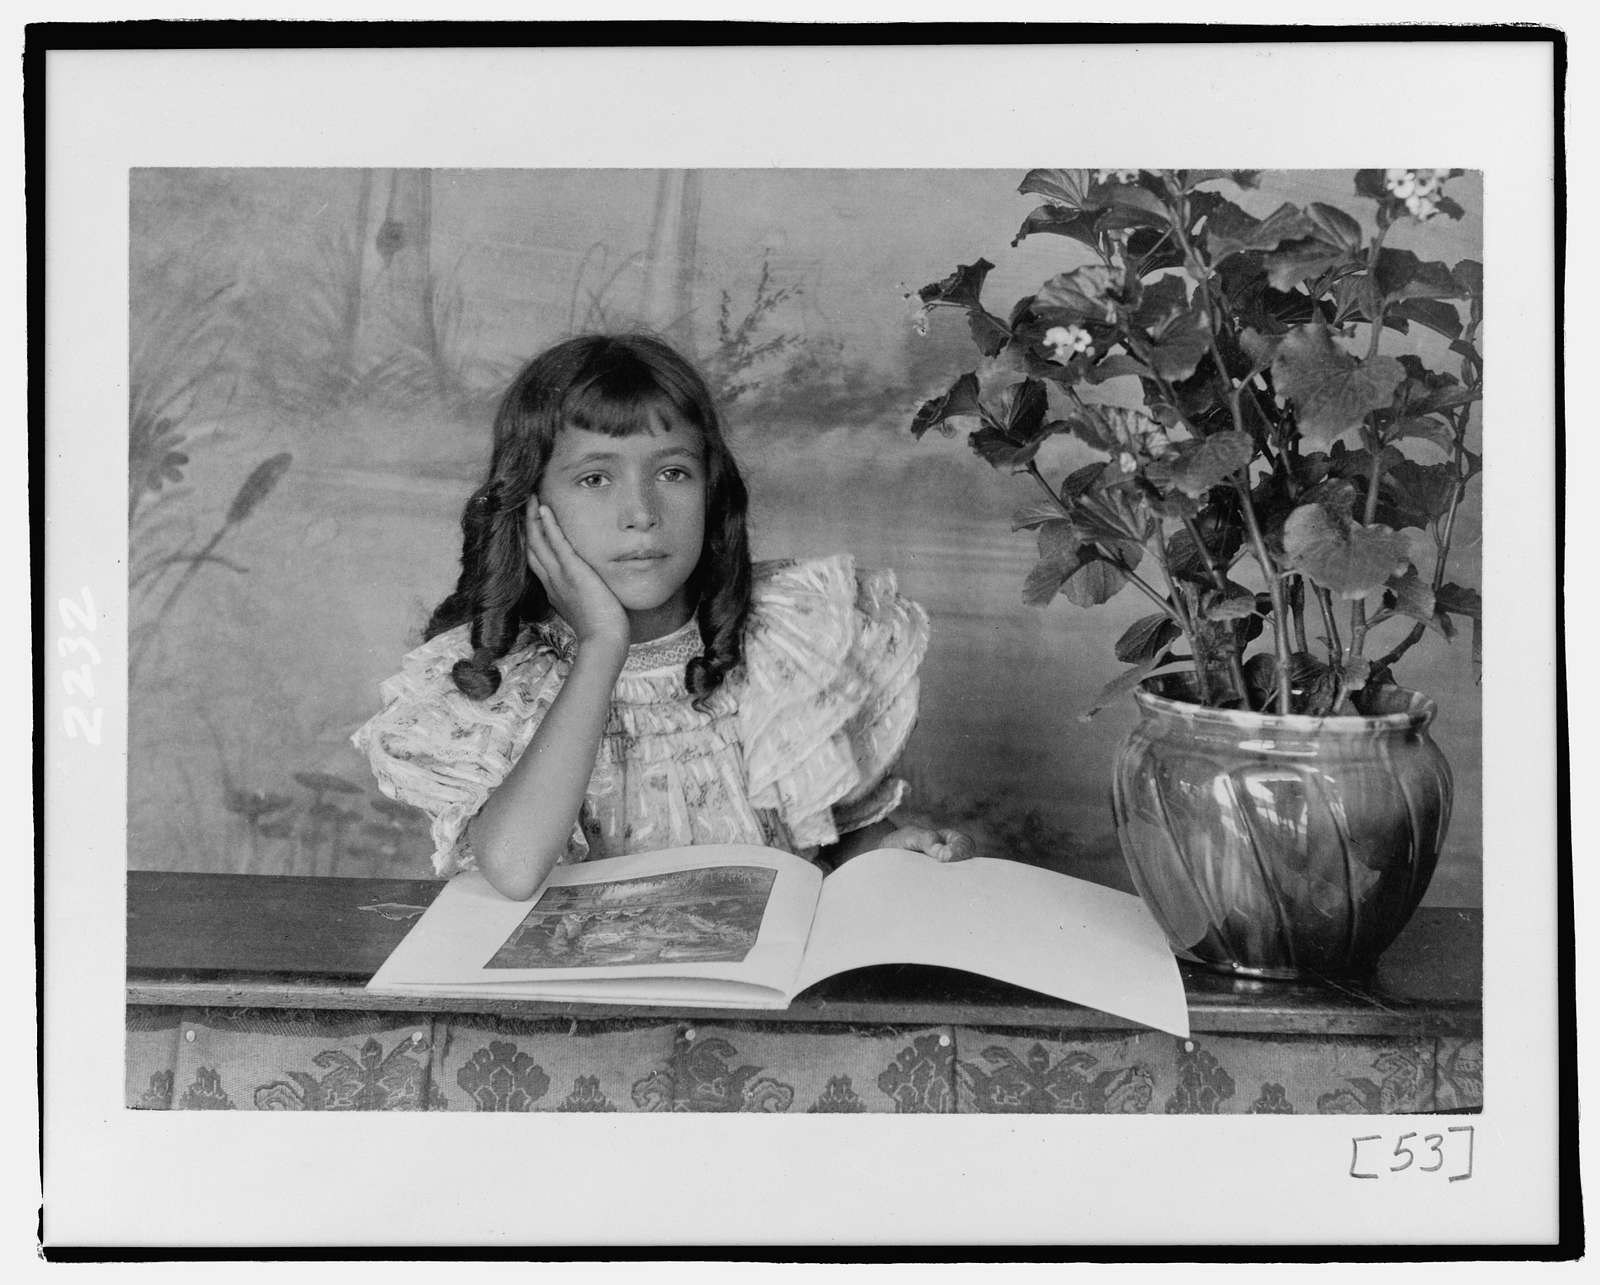 [Daughter of Thomas E. Askew, head-and-shoulders portrait, seated, right hand on cheek, with open book]